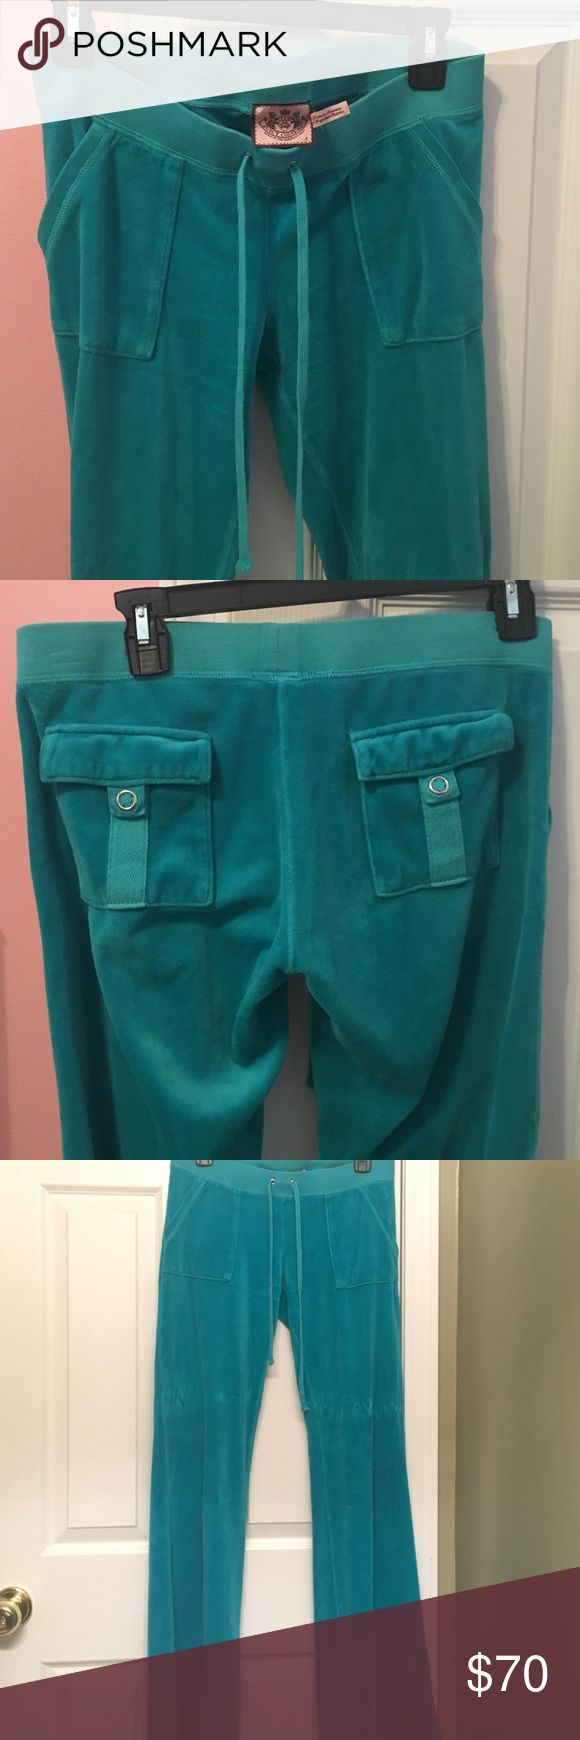 Juicy Couture teal velour tracksuit pants SMALL Juicy Couture turquoise/teal tracksuit pants. Low rise, drawstring,  flare velour sweatpants.  kangaroo pockets in the front and snap pockets on the back. Worn a few times, no sign of wear. Size Small. Juicy Couture Pants Track Pants & Joggers